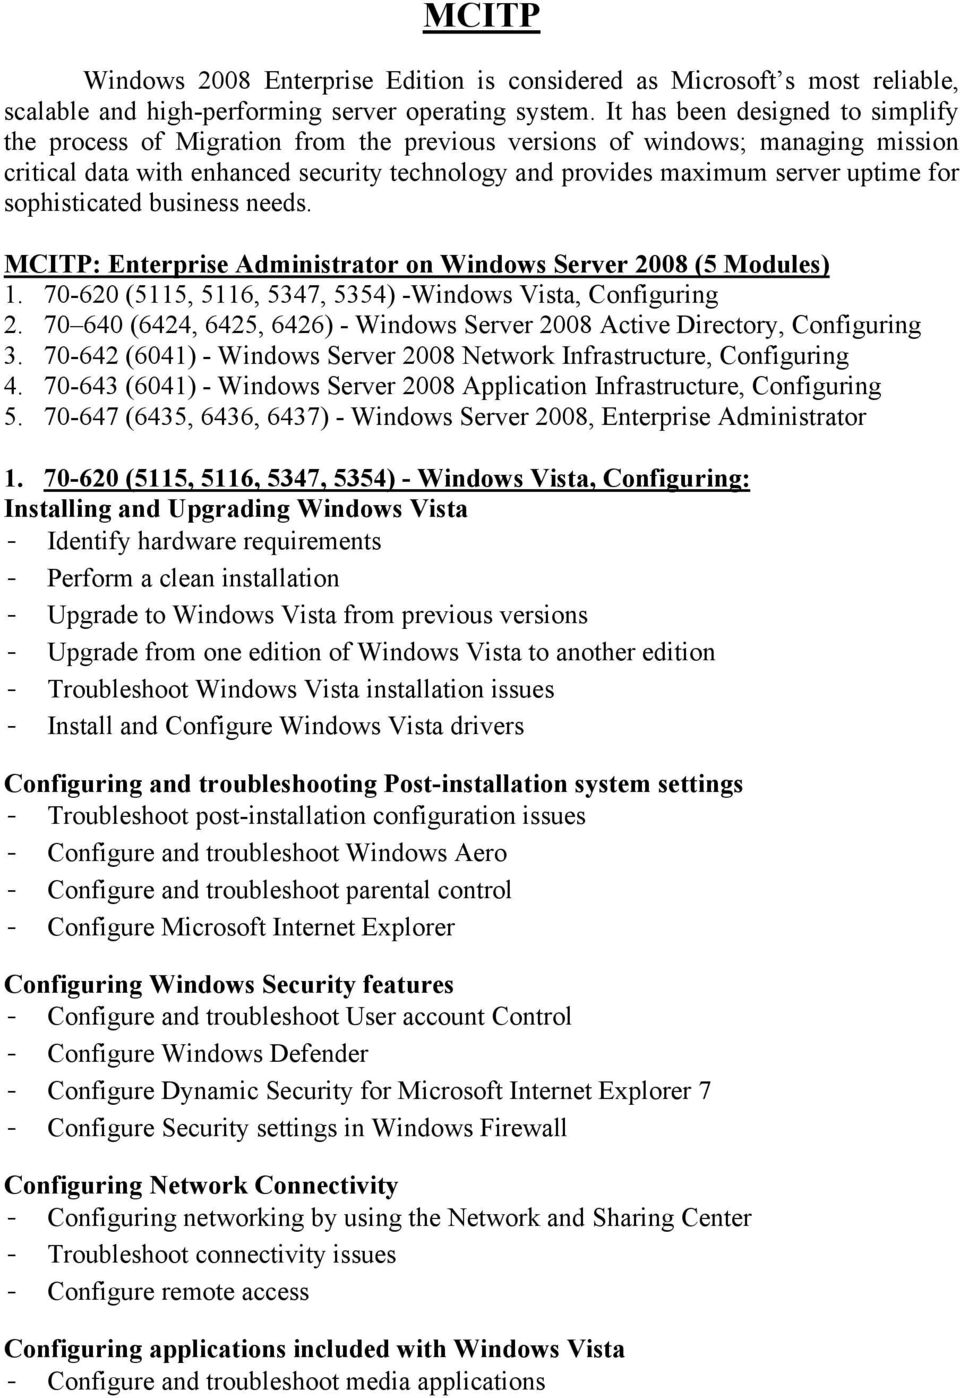 for sophisticated business needs. MCITP: Enterprise Administrator on Windows Server 2008 (5 Modules) 1. 70-620 (5115, 5116, 5347, 5354) -Windows Vista, Configuring 2.